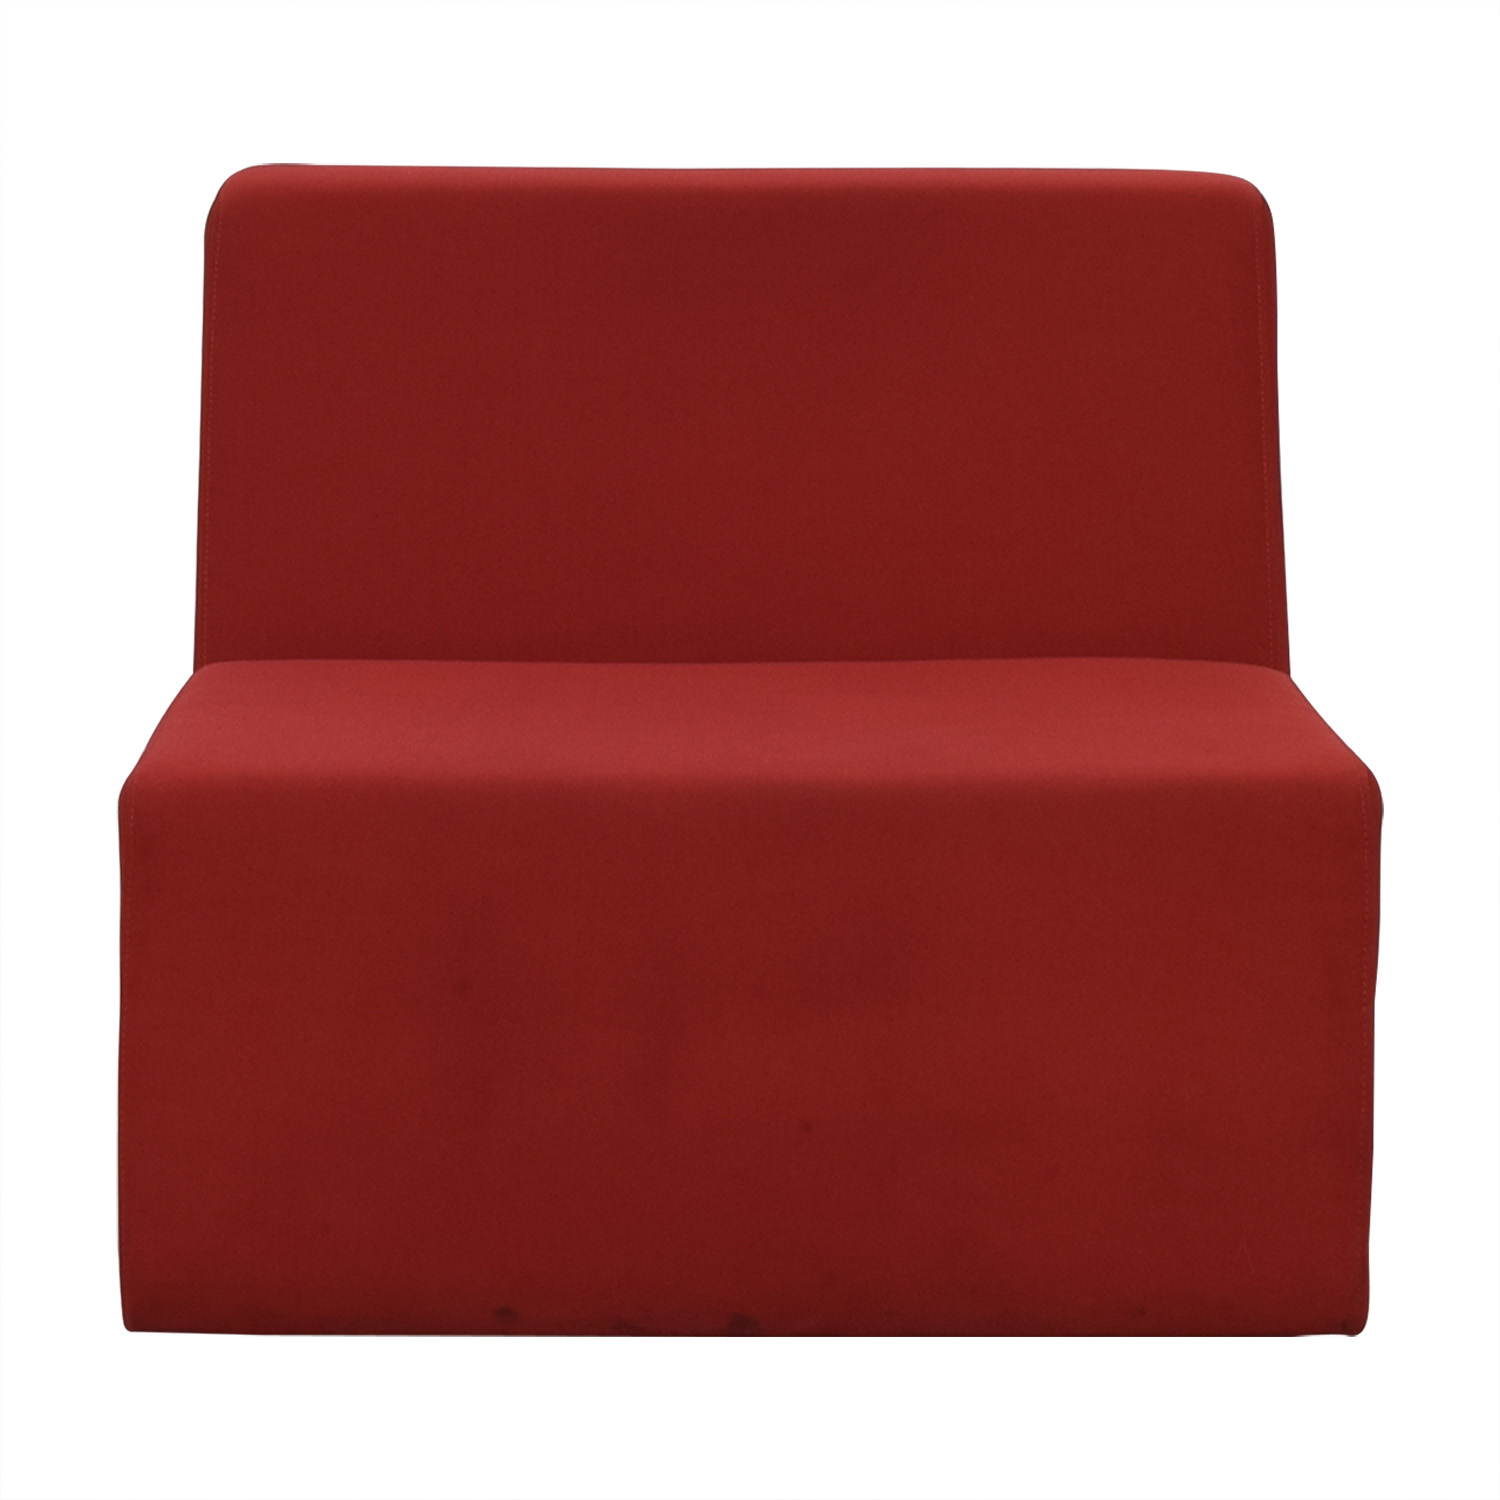 buy Steelcase Turnstone Campfire Lounge Chair Steelcase Turnstone